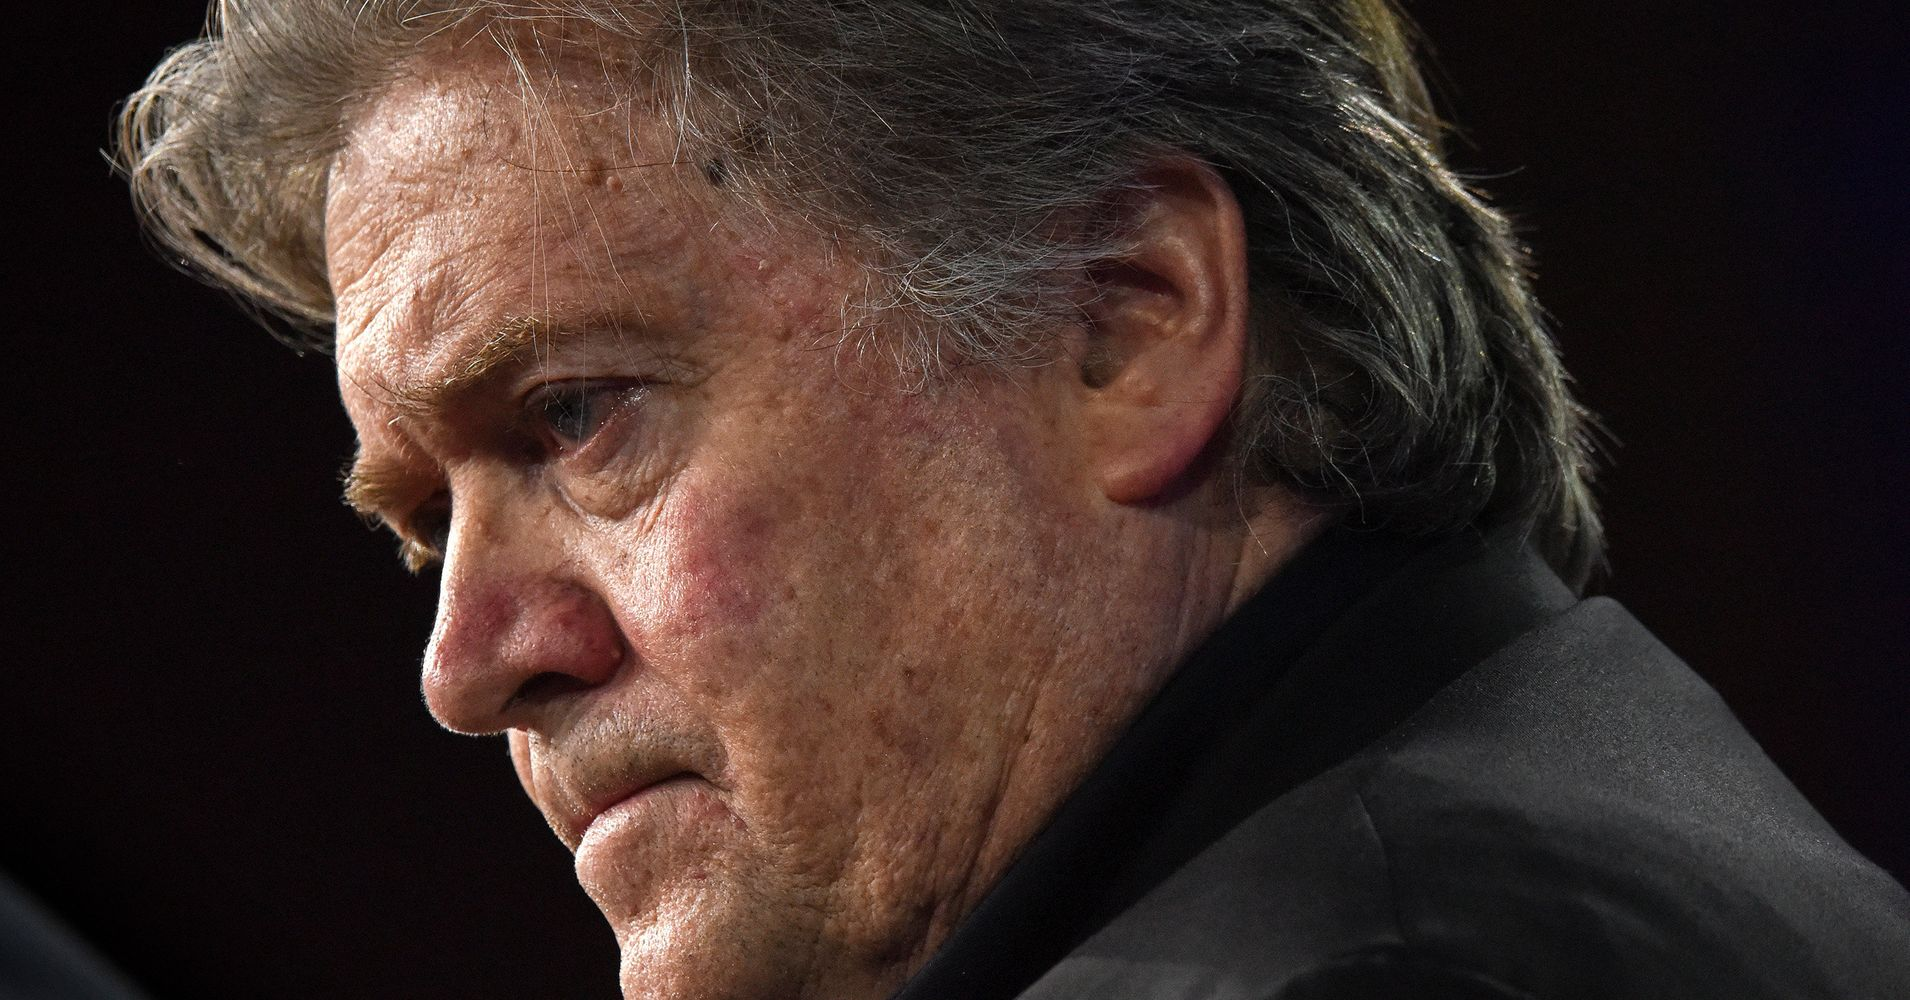 Top Trump Adviser Steve Bannon Out From White House